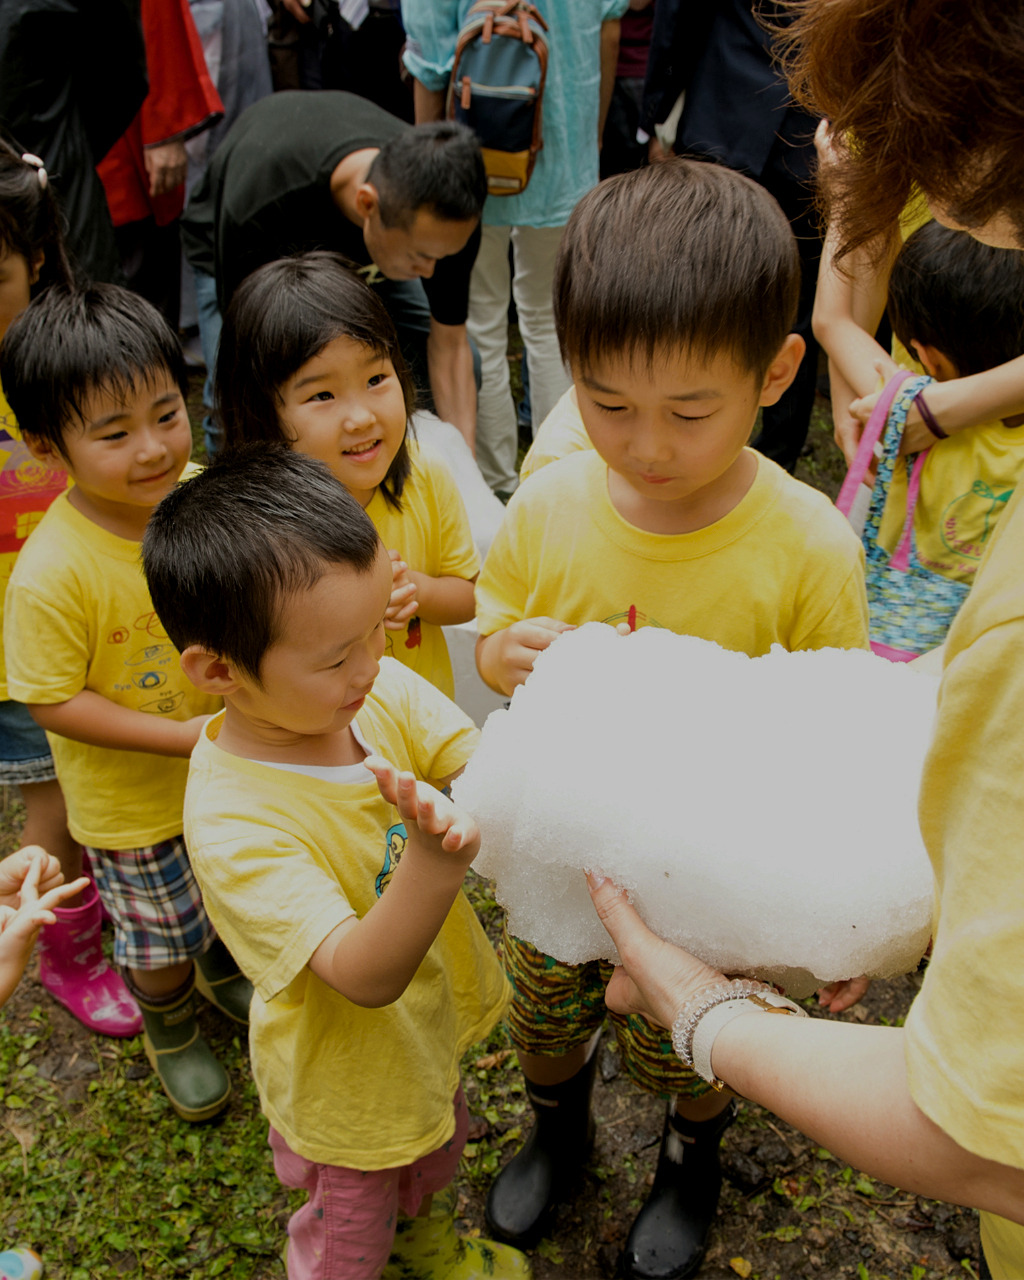 Children at the summer Yuwaku Ice festival